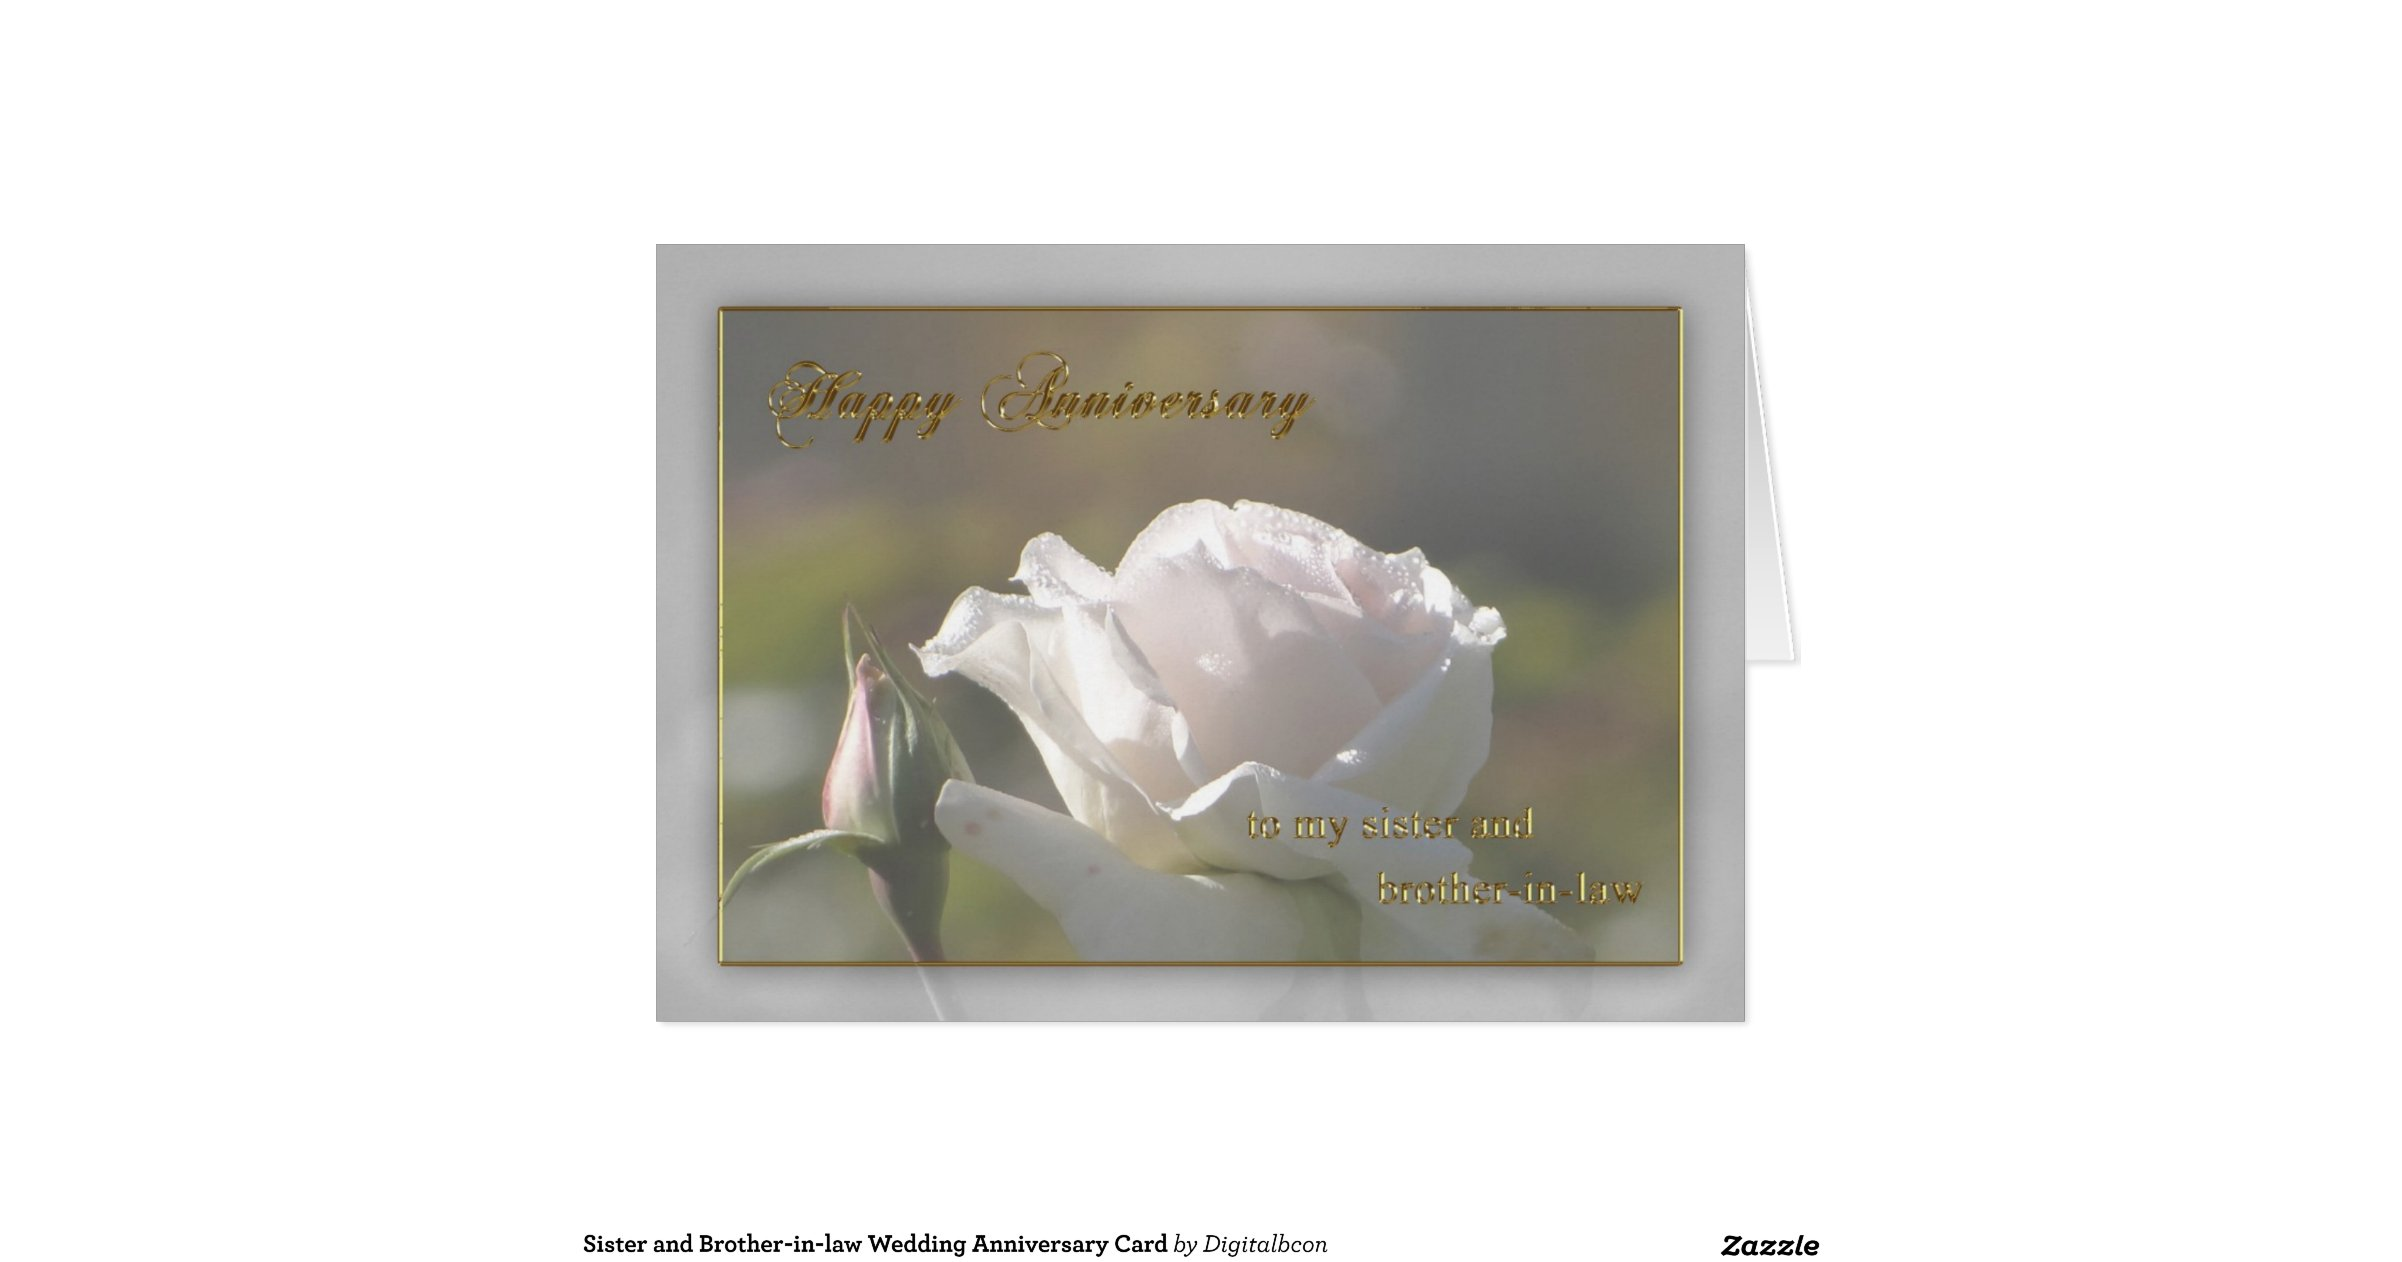 Wedding Gifts For Sister And Brother In Law: Sister And Brother-in-law Wedding Anniversary Card